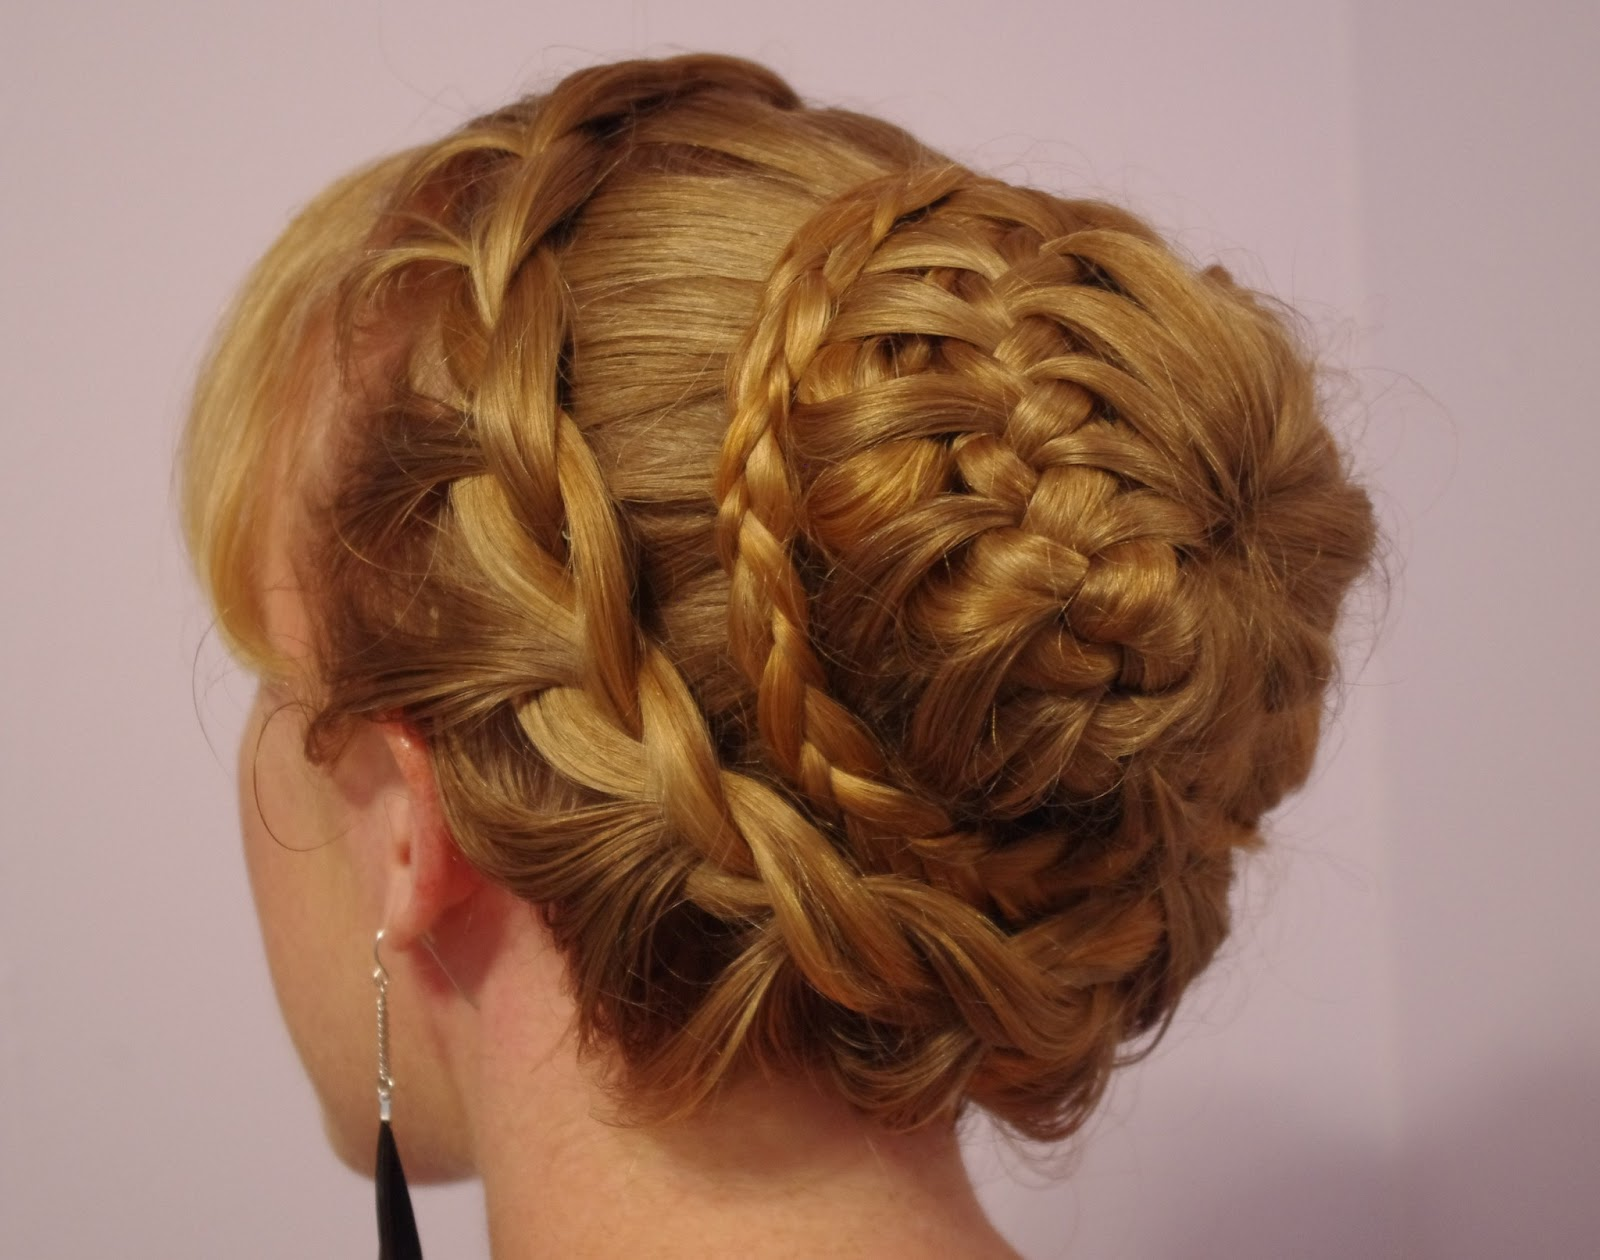 Braids hairstyles for super long hair fancy braided bun for lack of a better name or the imagination to think one up i just called this my fancy braided bun if you have a better name for this hairstyle feel ccuart Gallery